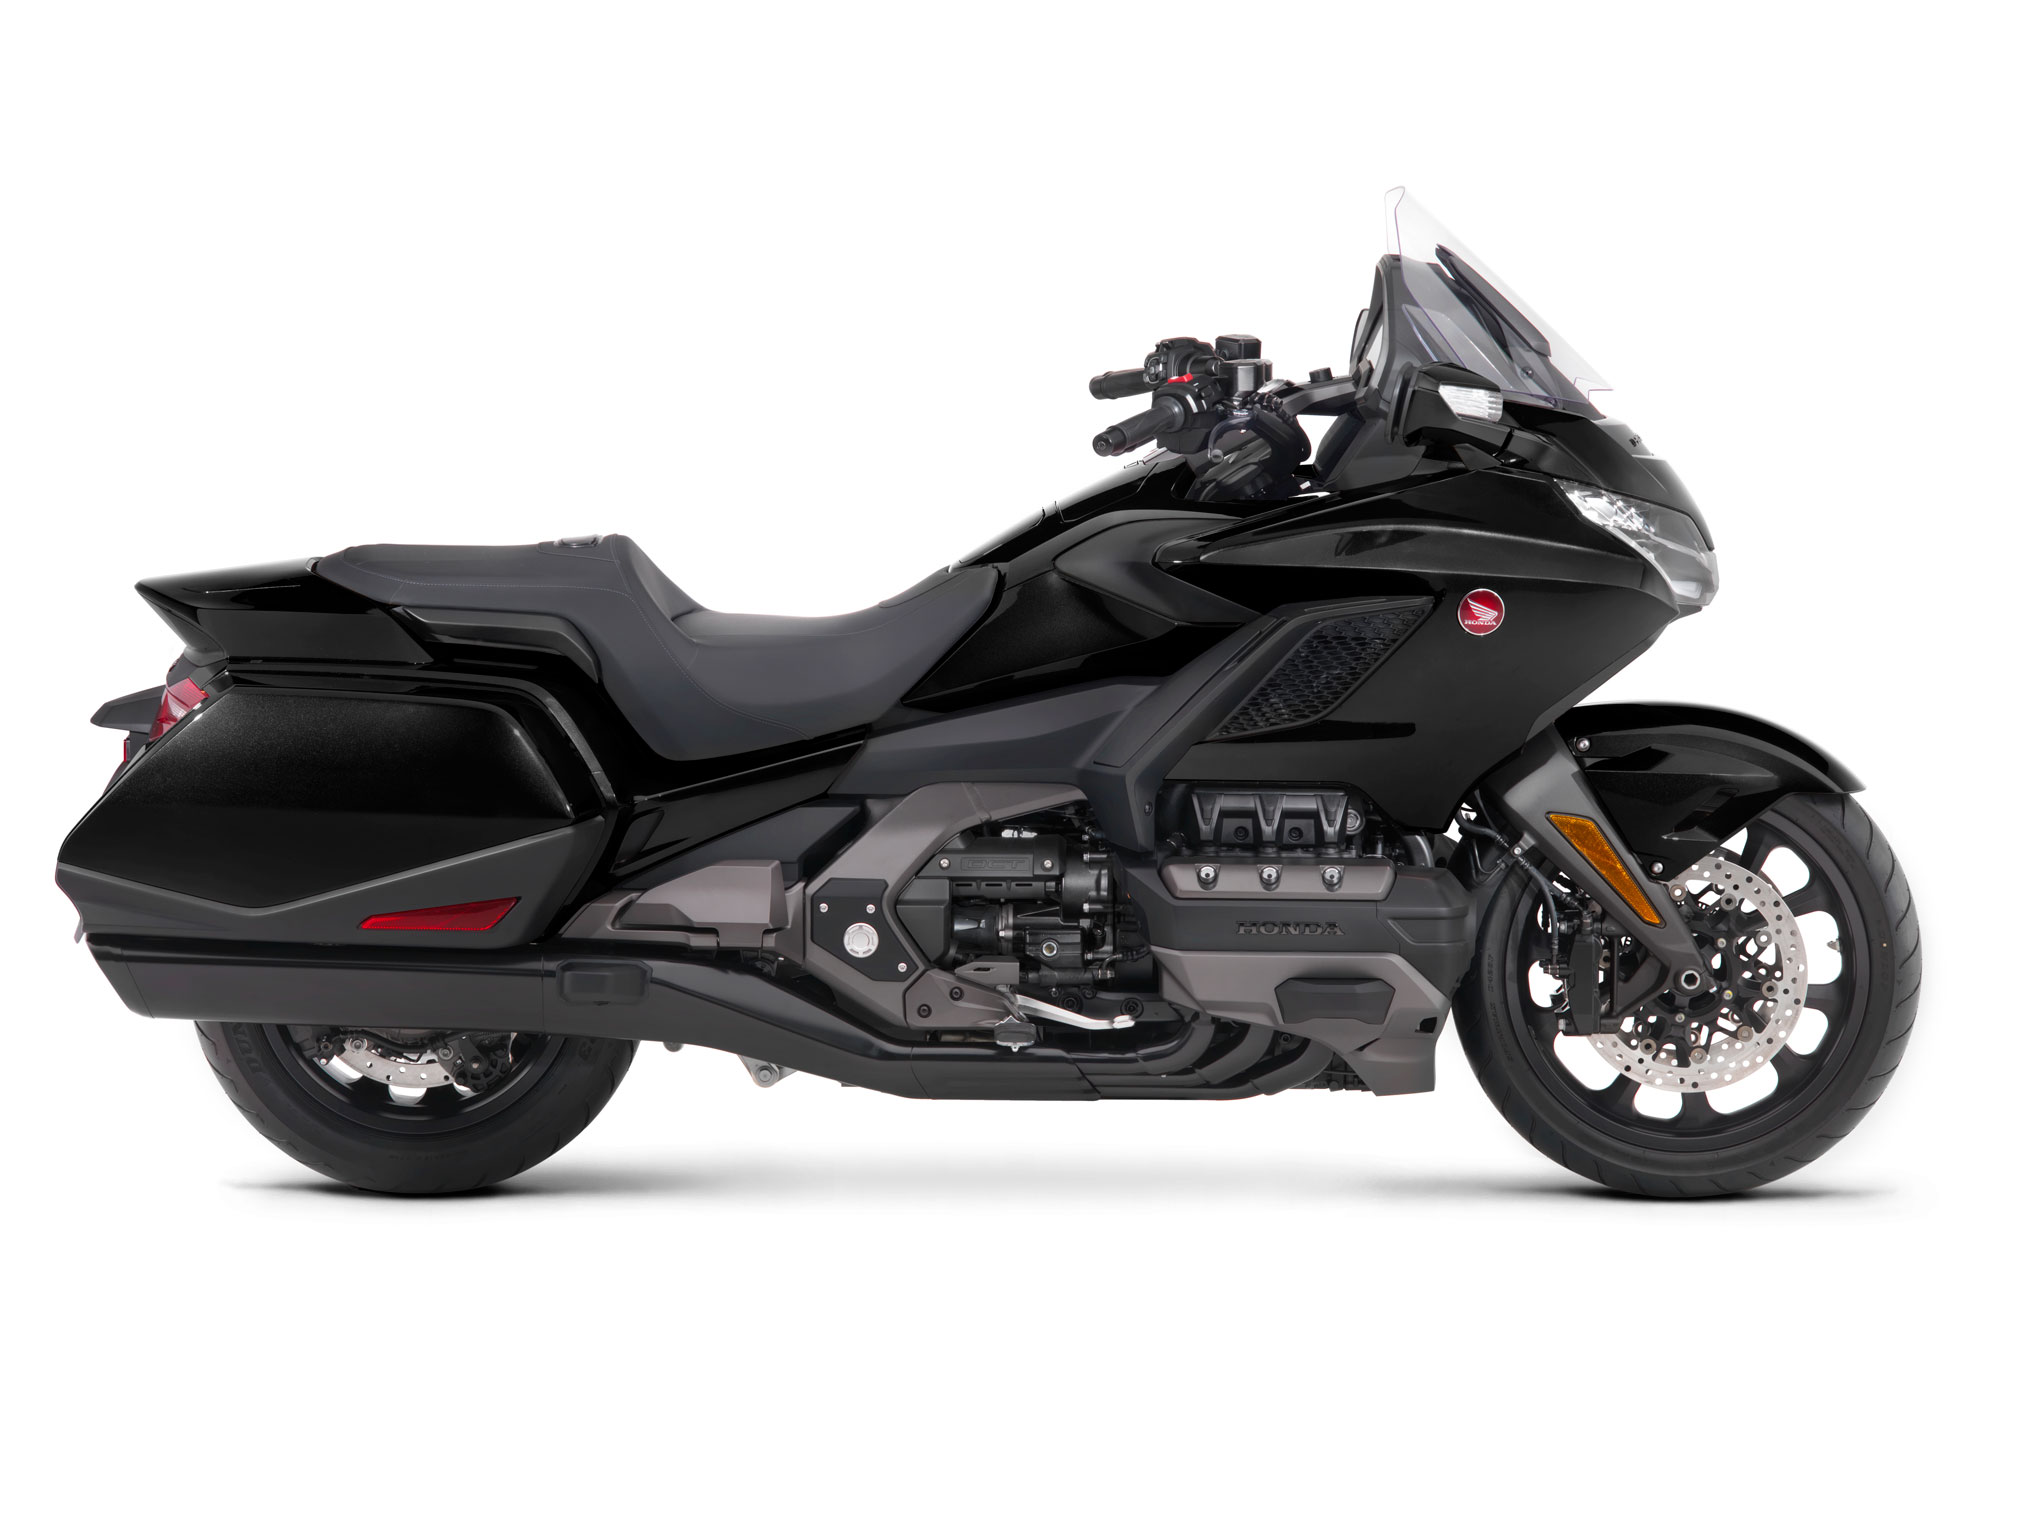 2019 Honda Gold Wing Guide • Total Motorcycle